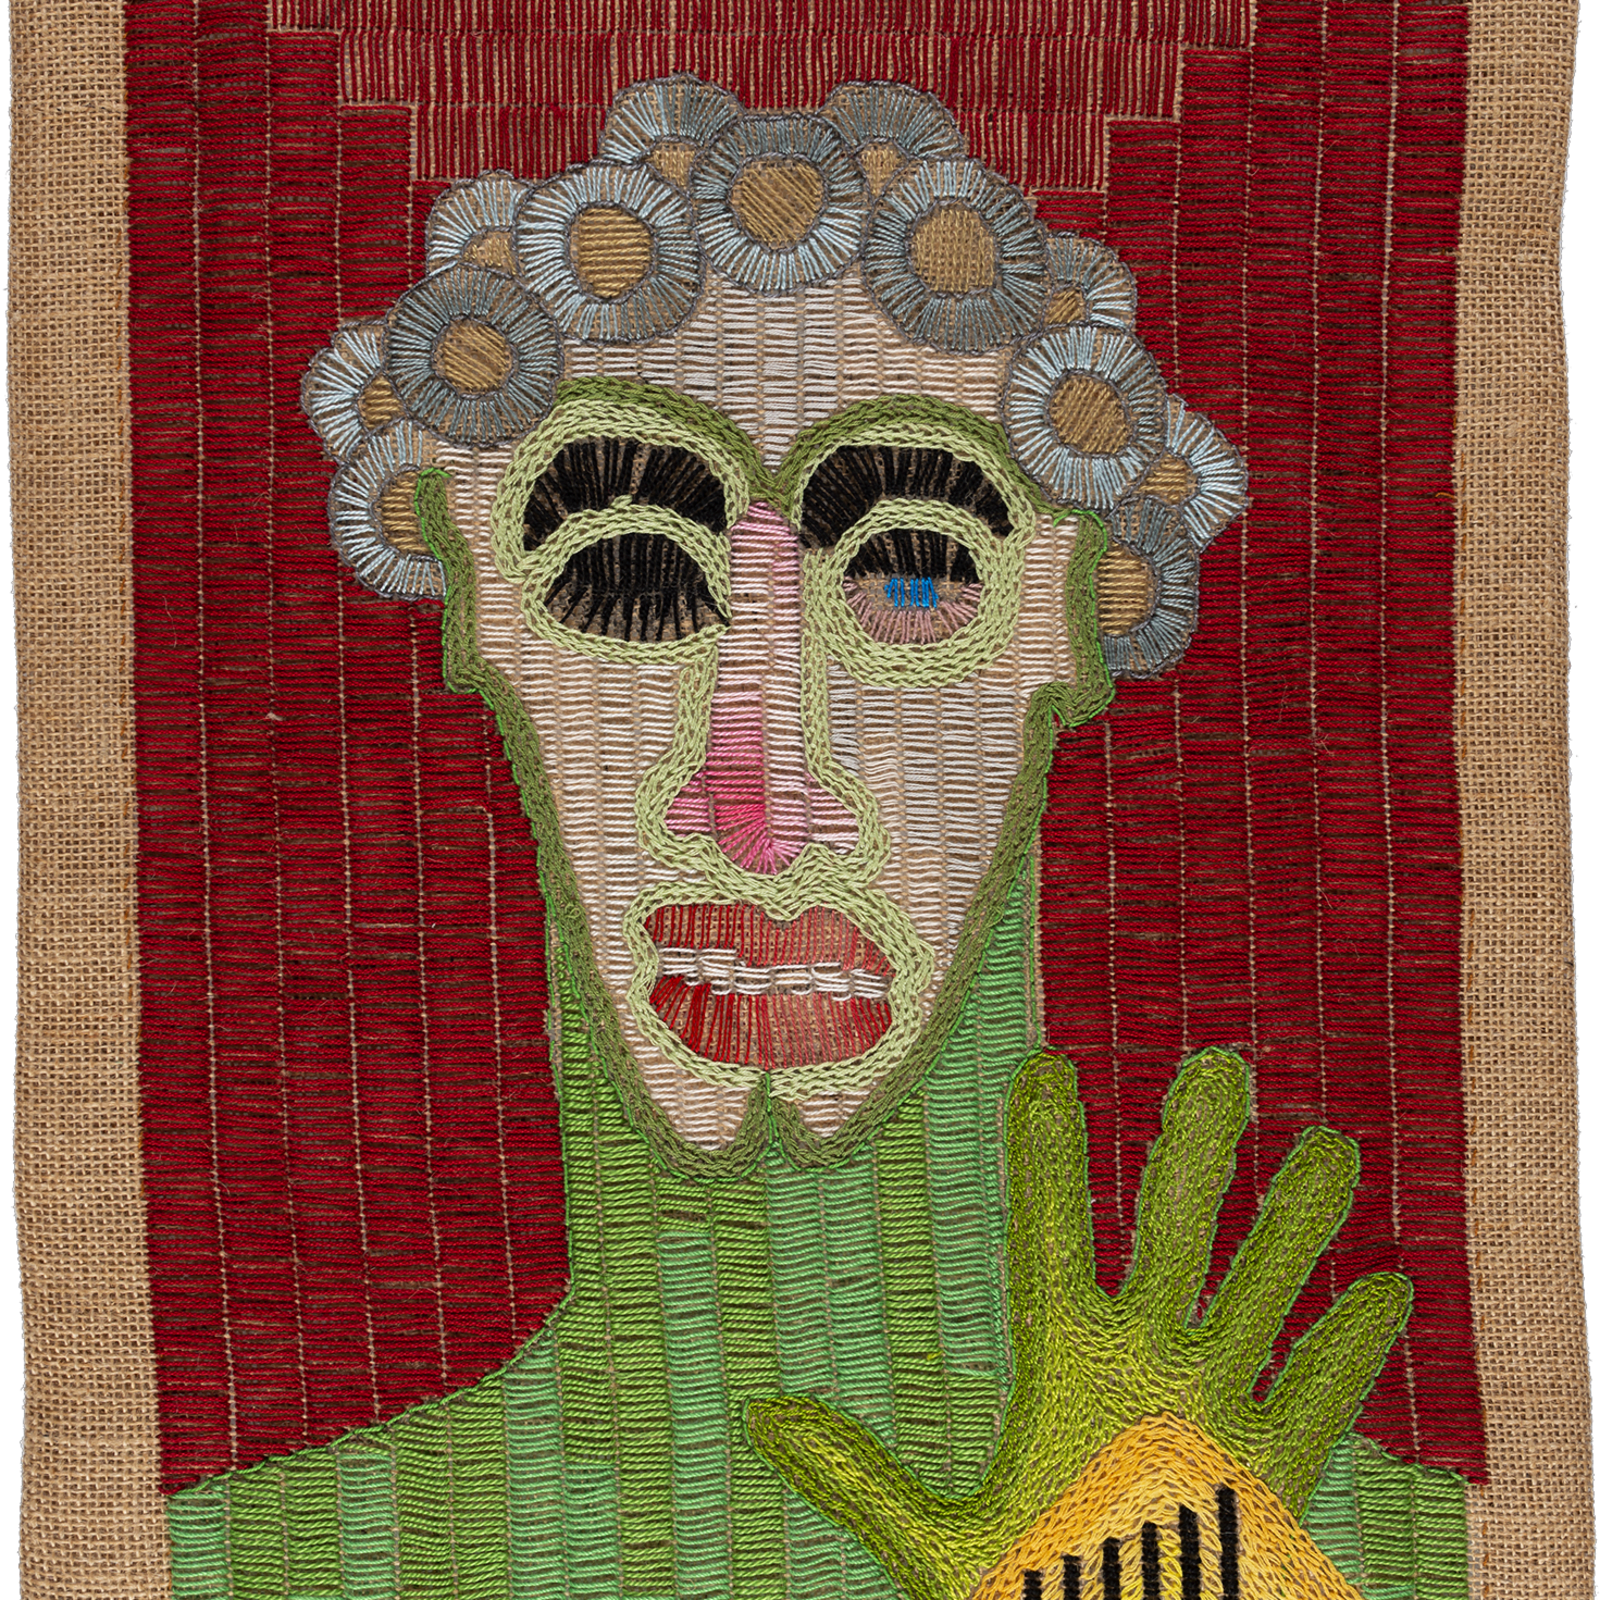 Paloma Castillo  El Olimpo I, 2020  Hand embroidery with cotton threads on jute  52 x 39 cm